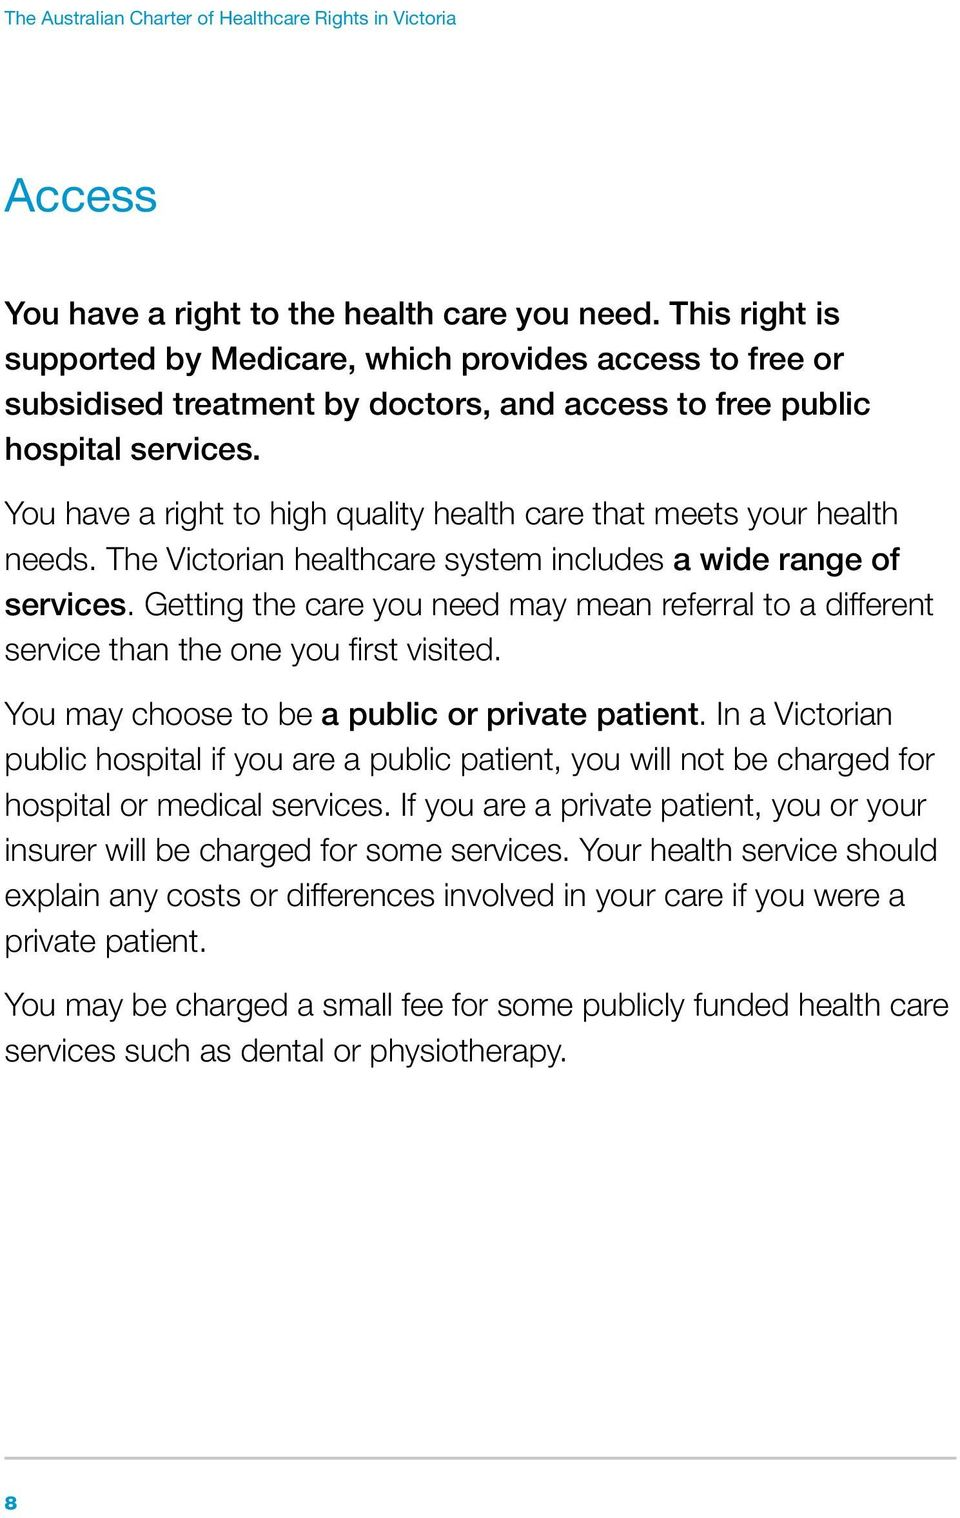 You have a right to high quality health care that meets your health needs. The Victorian healthcare system includes a wide range of services.